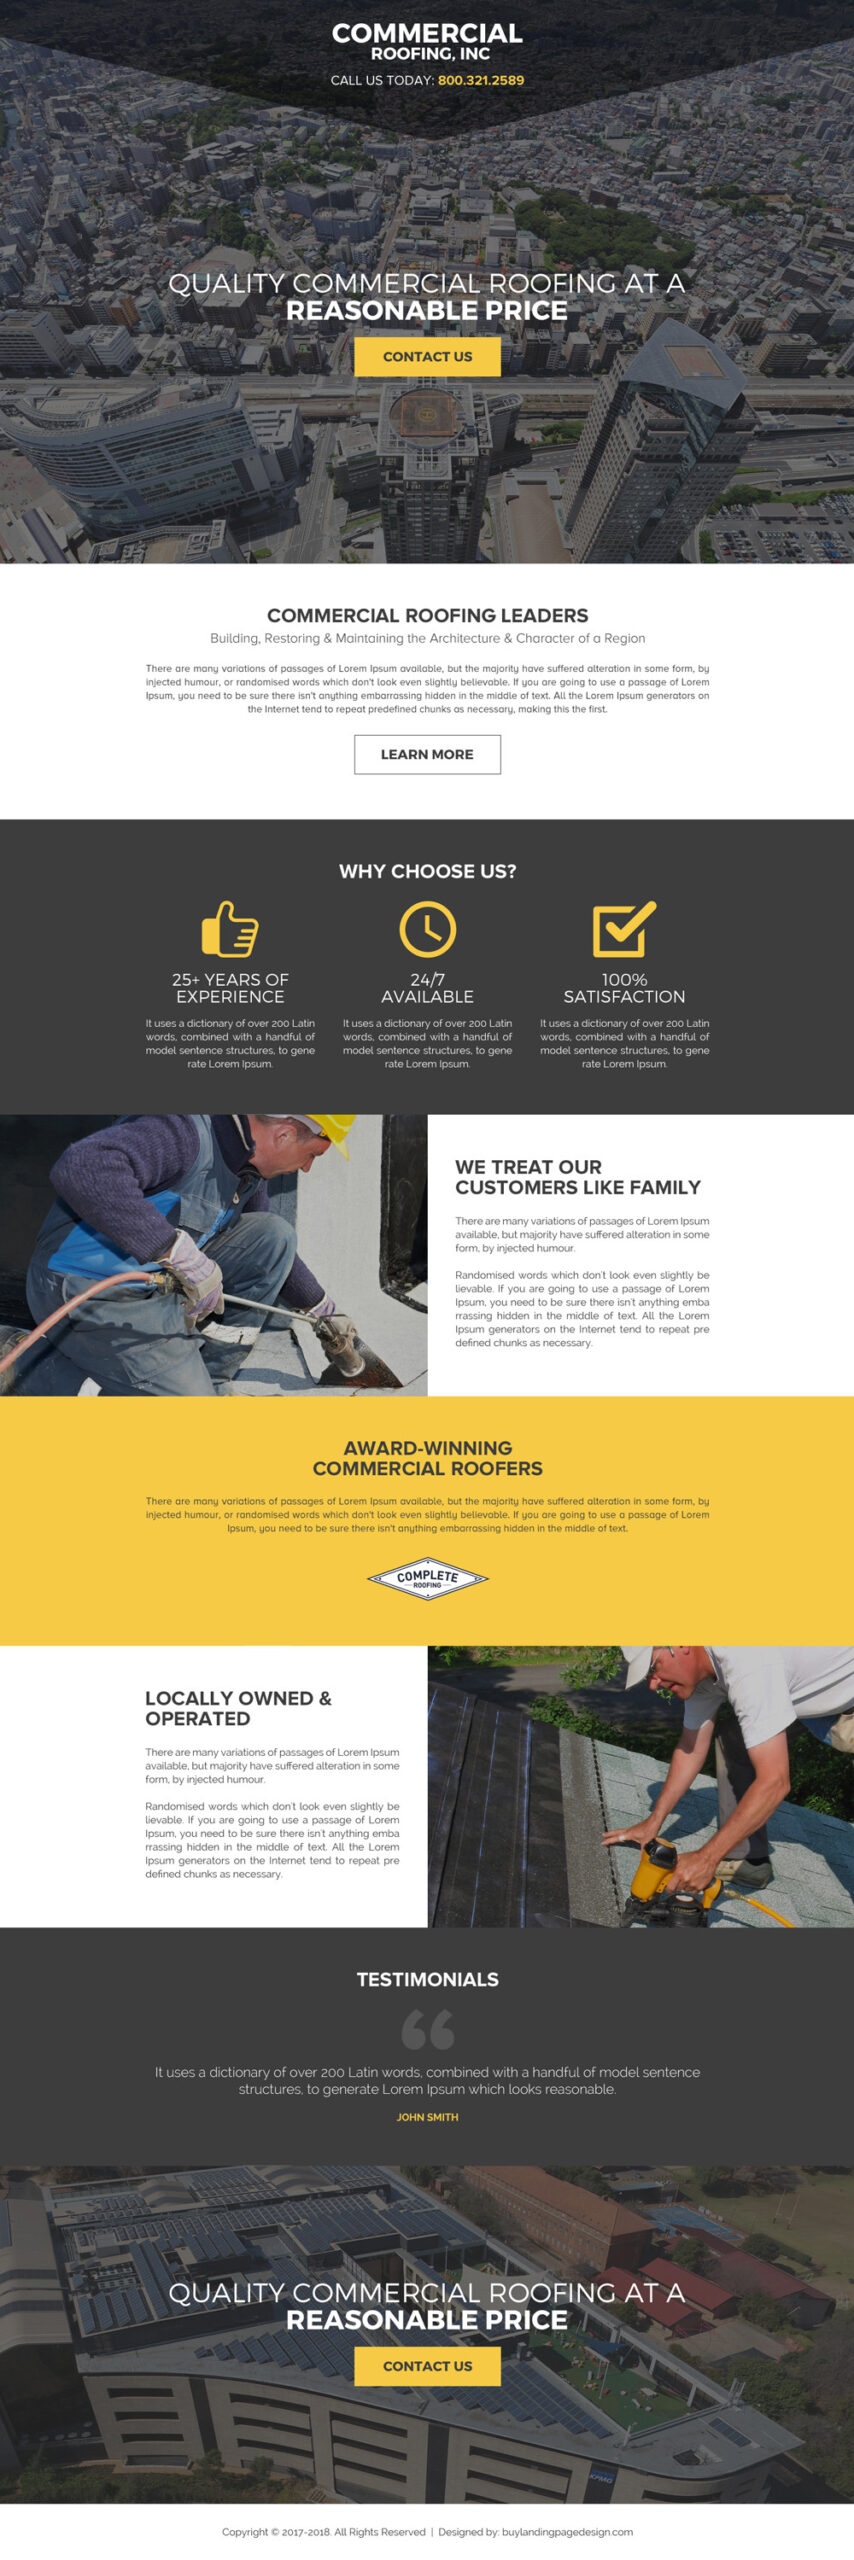 Quality commercial roofing leaders landing page